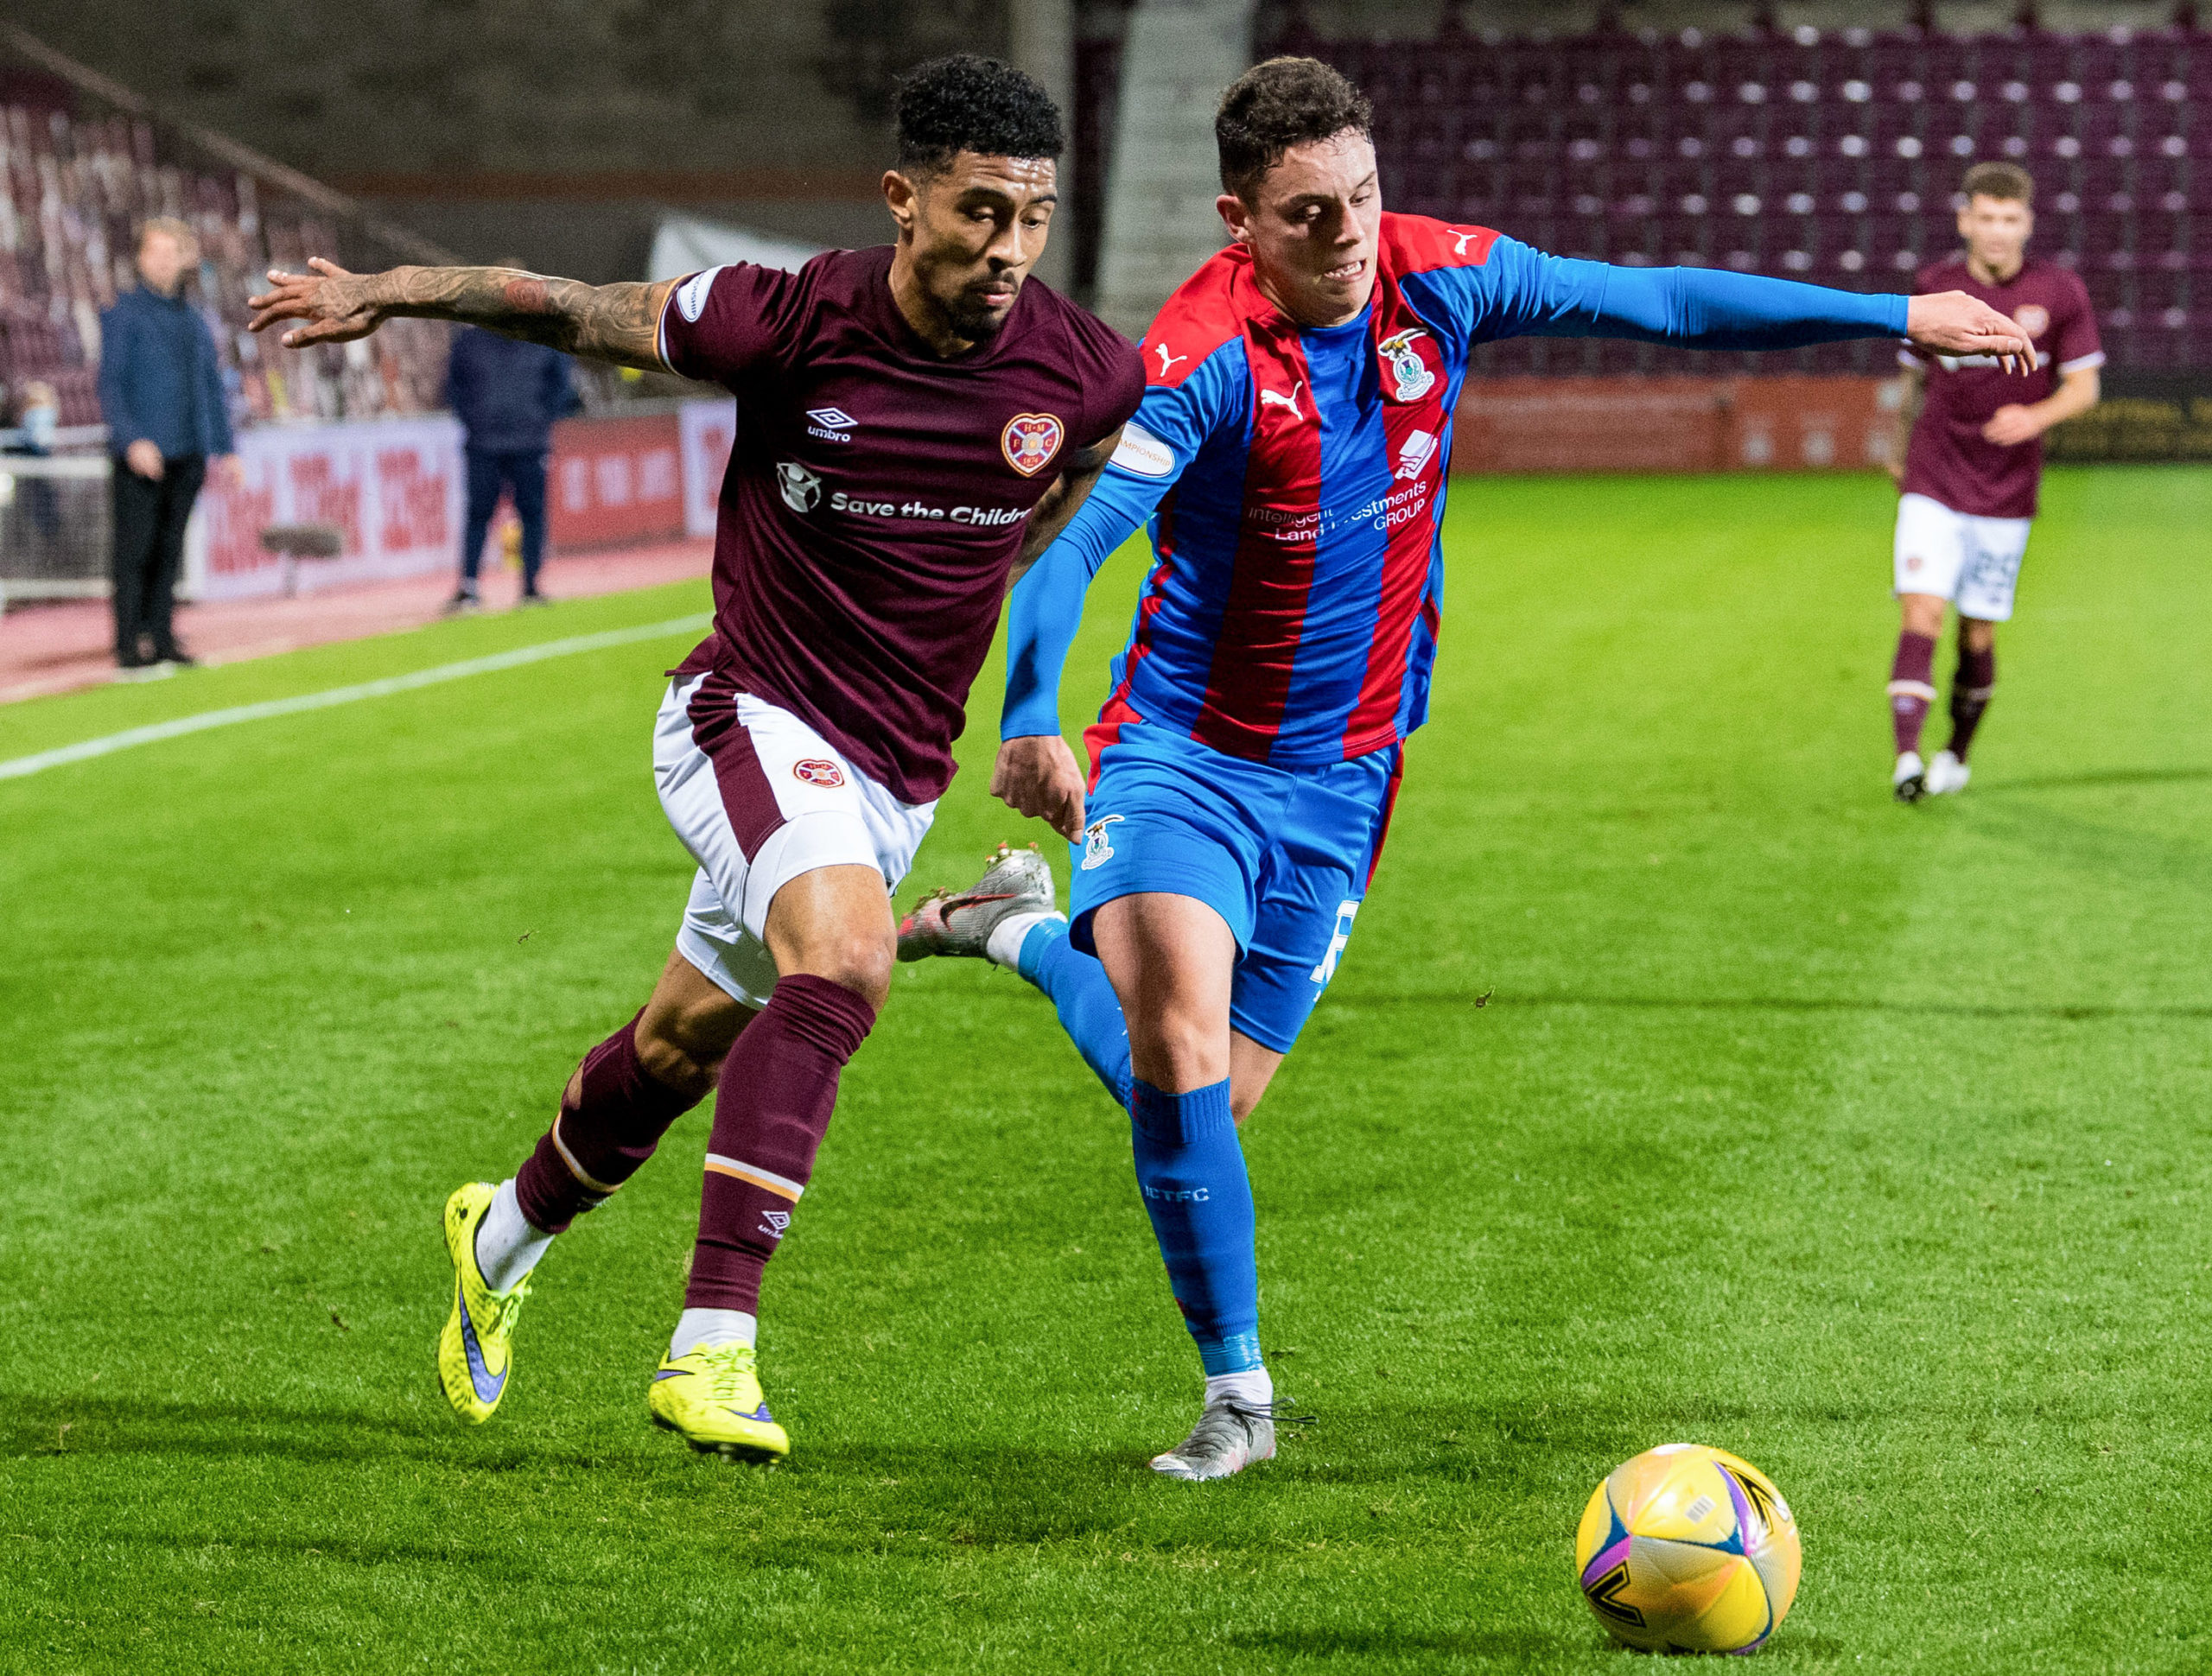 Heart of Midlothian v Inverness Caledonian Thistle - Betfred Cup Match